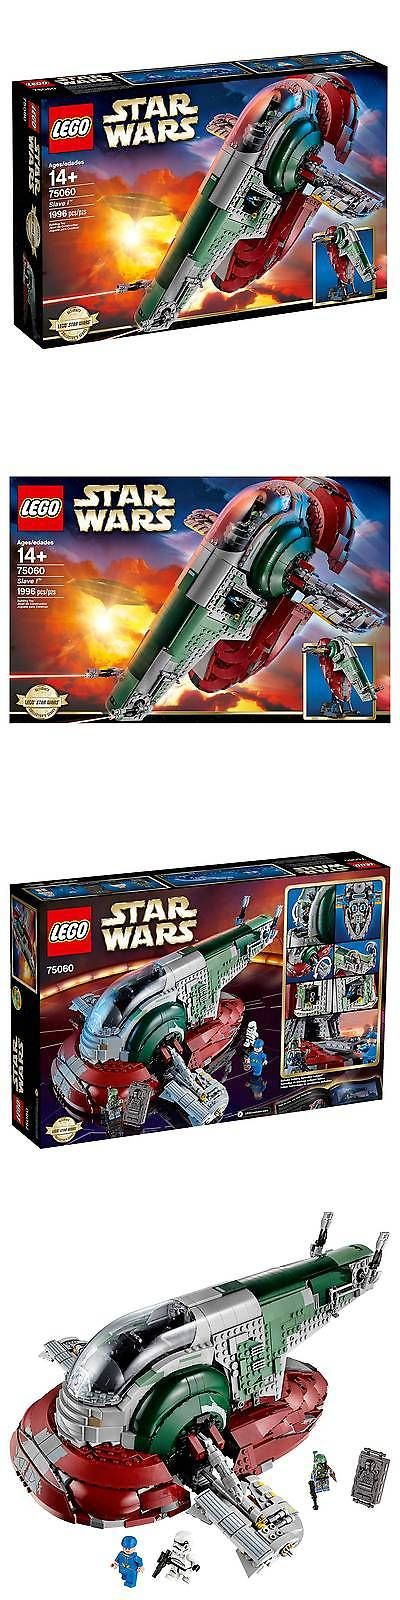 LEGO Complete Sets and Packs 19006: Legoand#174: Star Warsand#153: Slave 1 75060 -> BUY IT NOW ONLY: $199.99 on eBay!